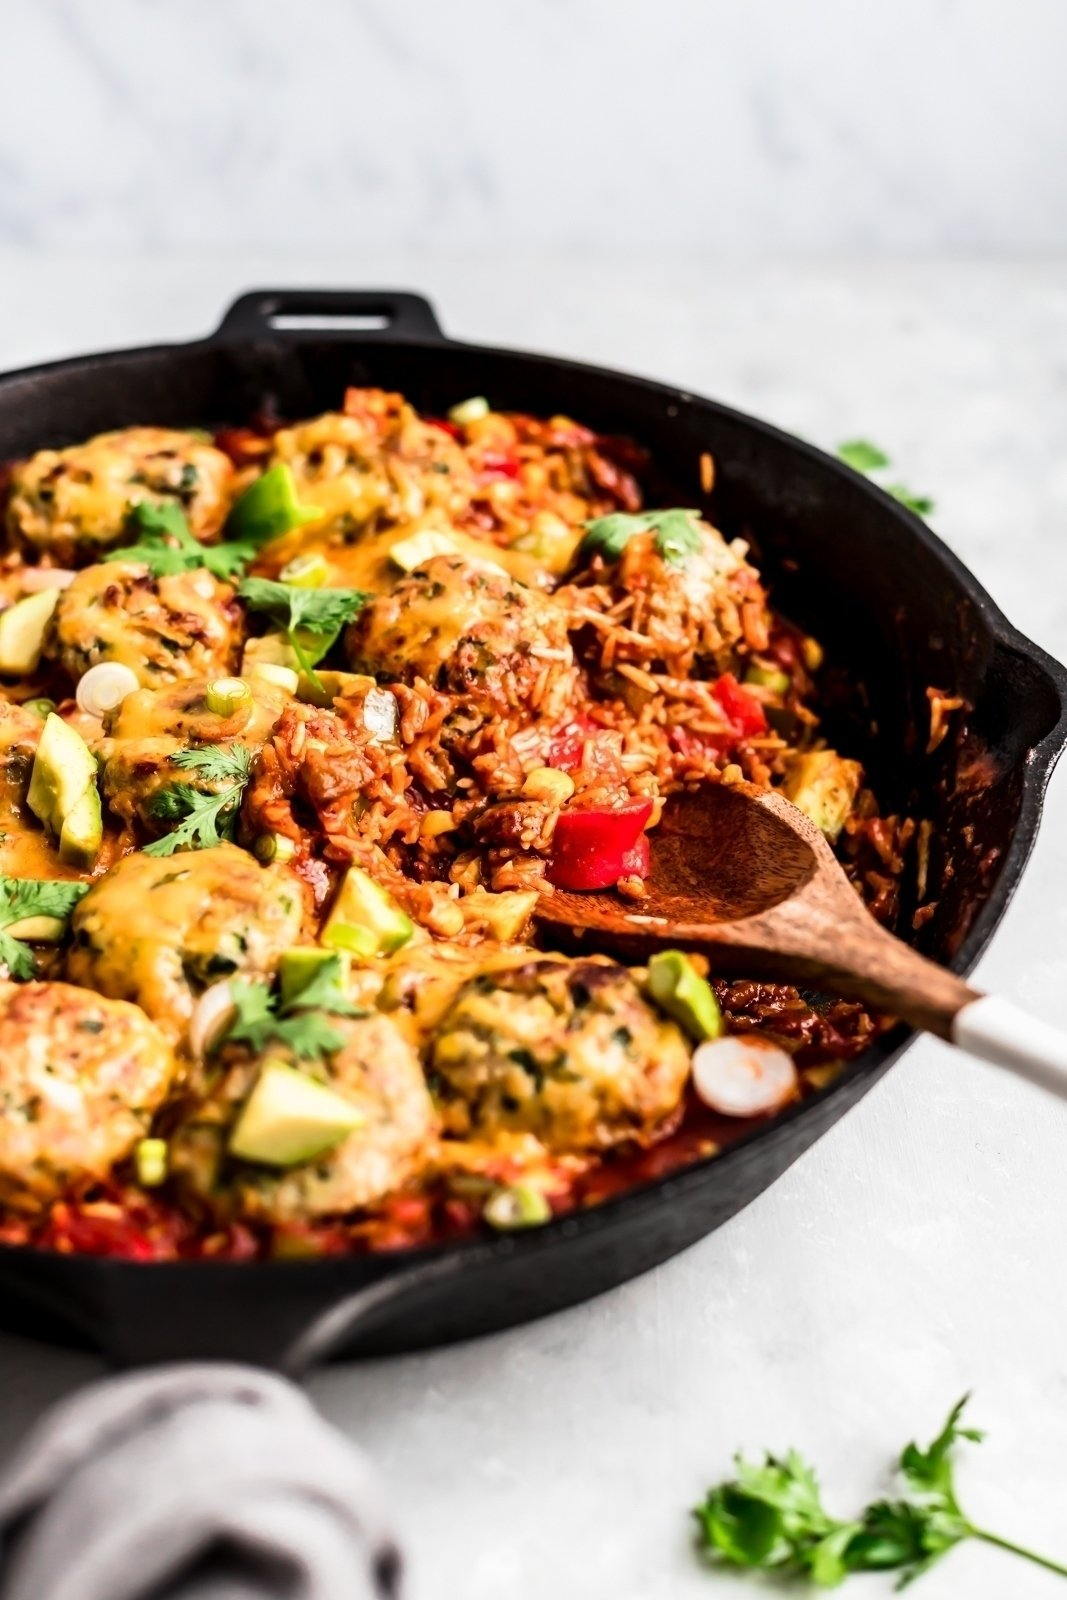 zucchini turkey meatballs with rice, veggies and cheese in a skillet with a wooden spoon